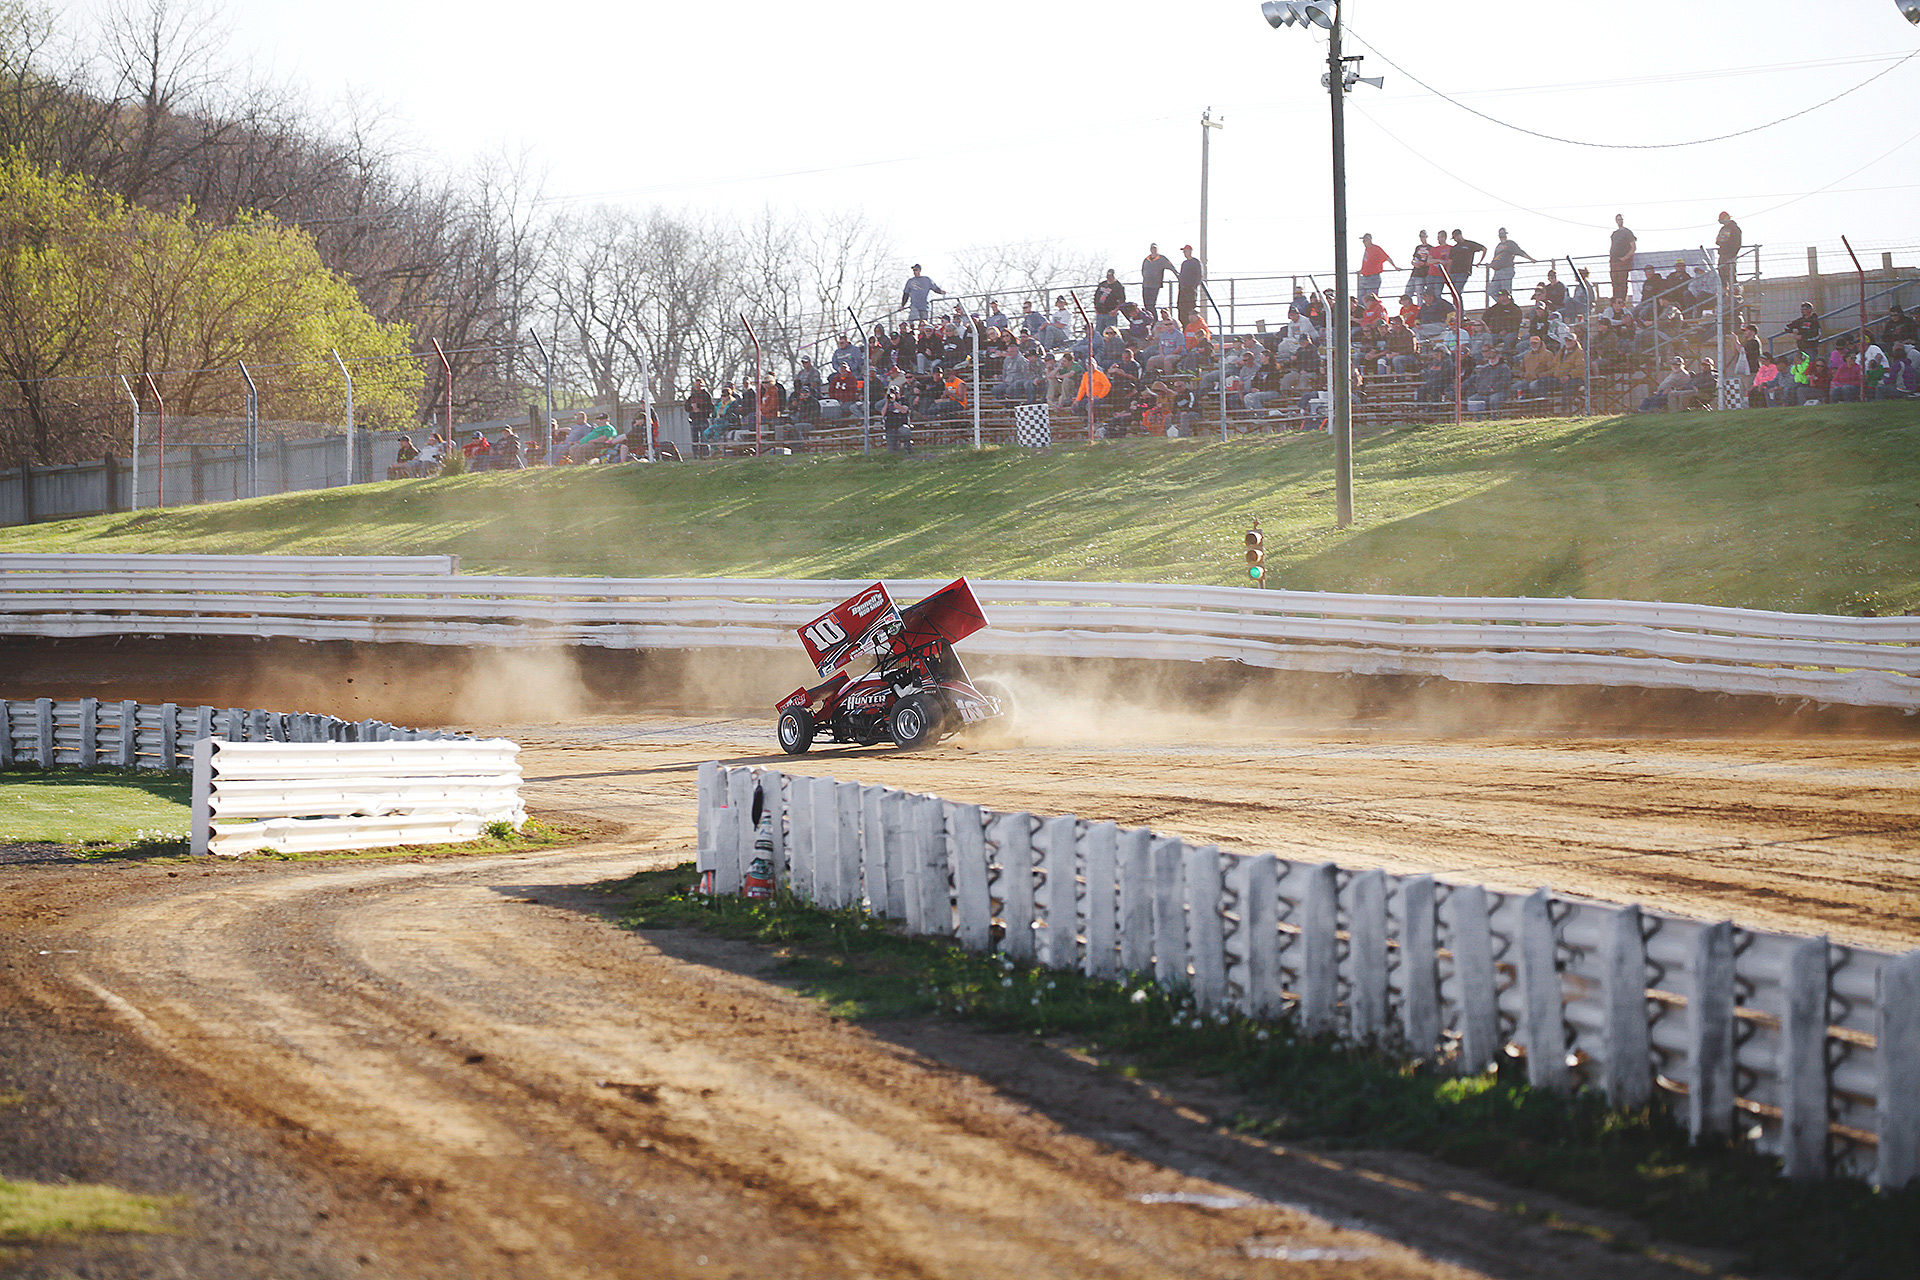 Ohio native; Chad Kemenah pushes through turn 1 during qualifying at Selinsgrove Speedway in 2016. ( Jeffrey Turford / TDP )